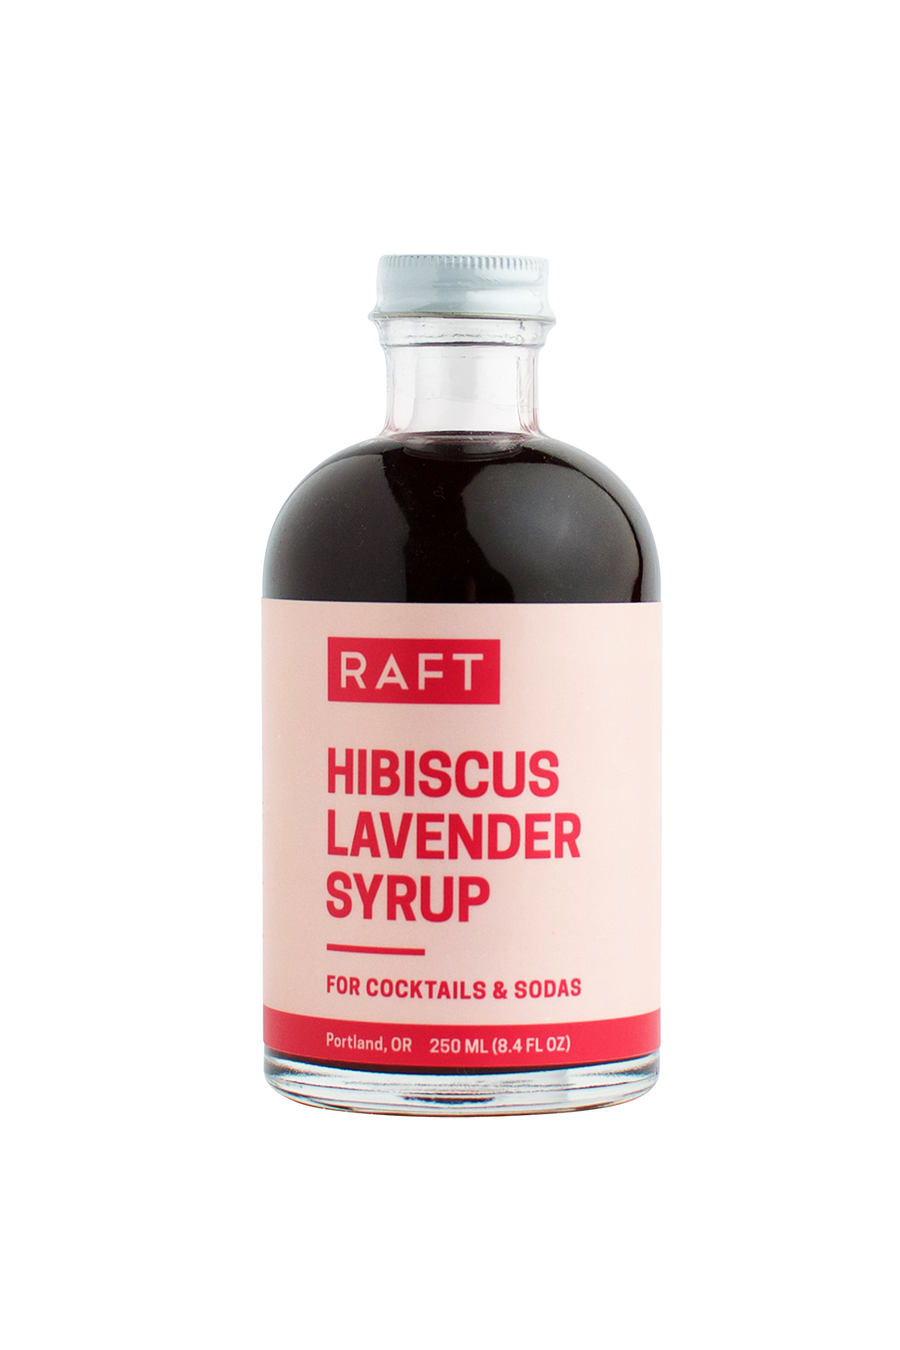 Hibiscus Lavender Syrup